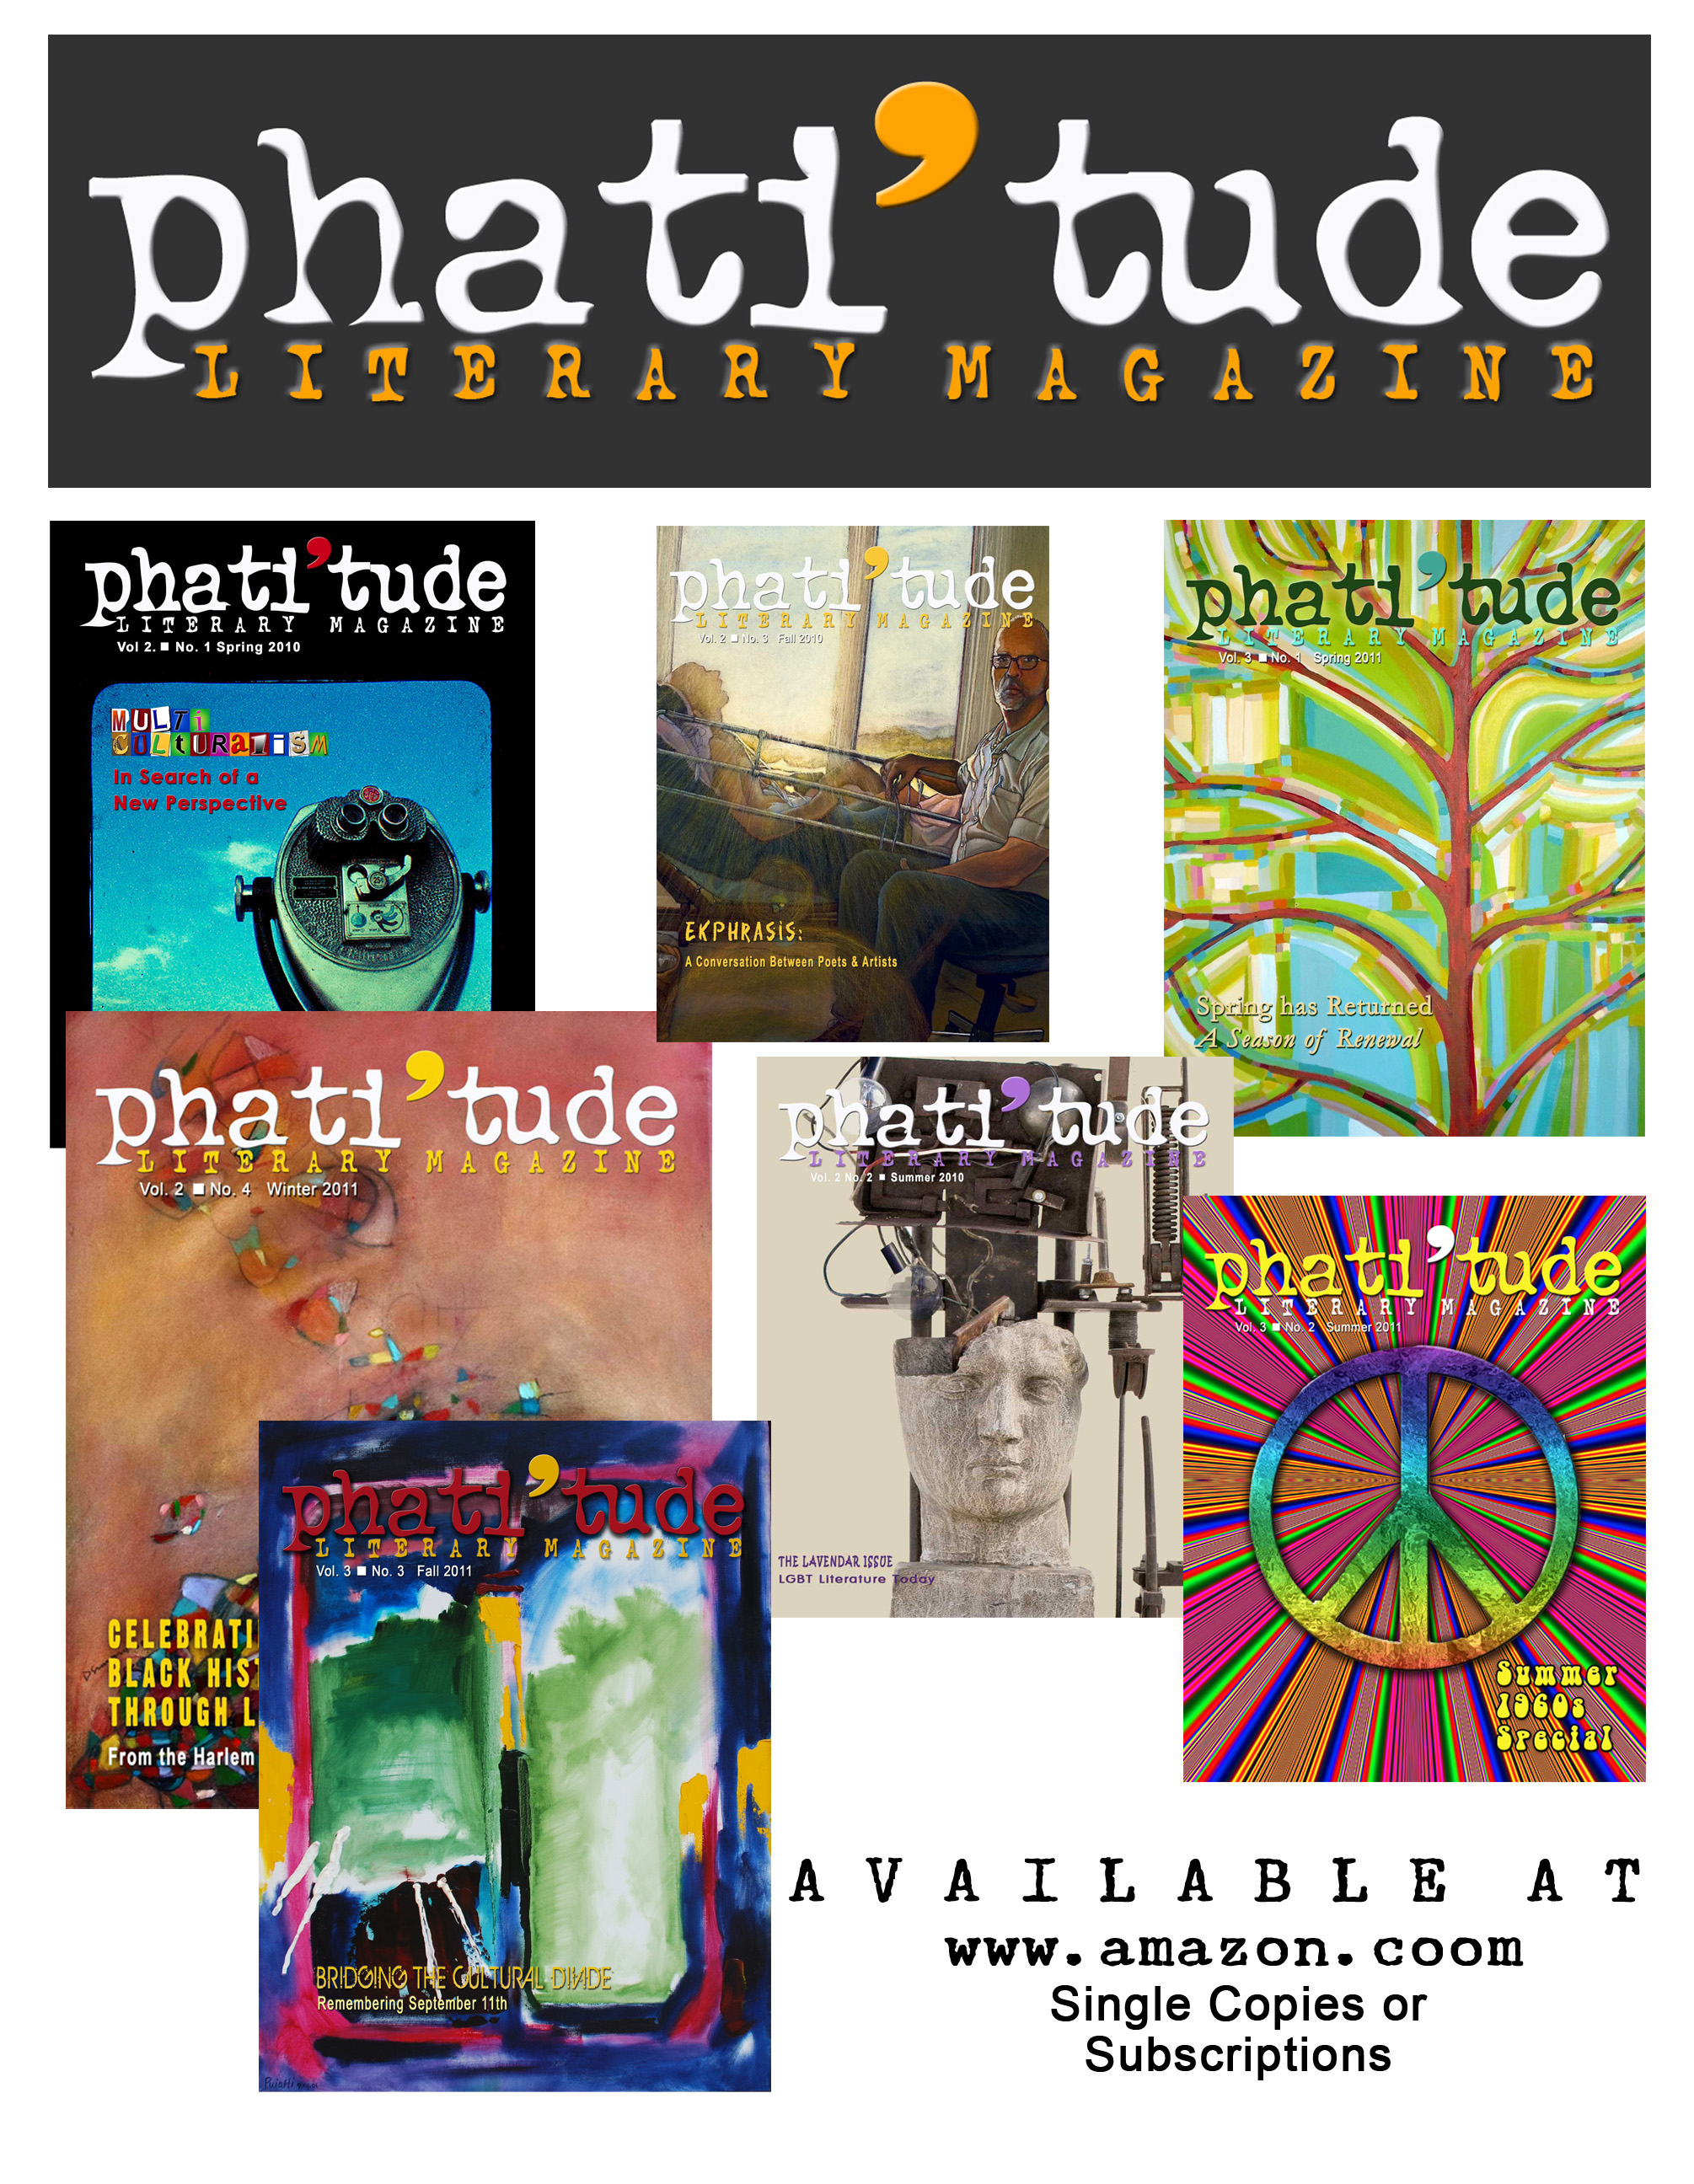 phati'tude Literay Magazine Covers 11.11